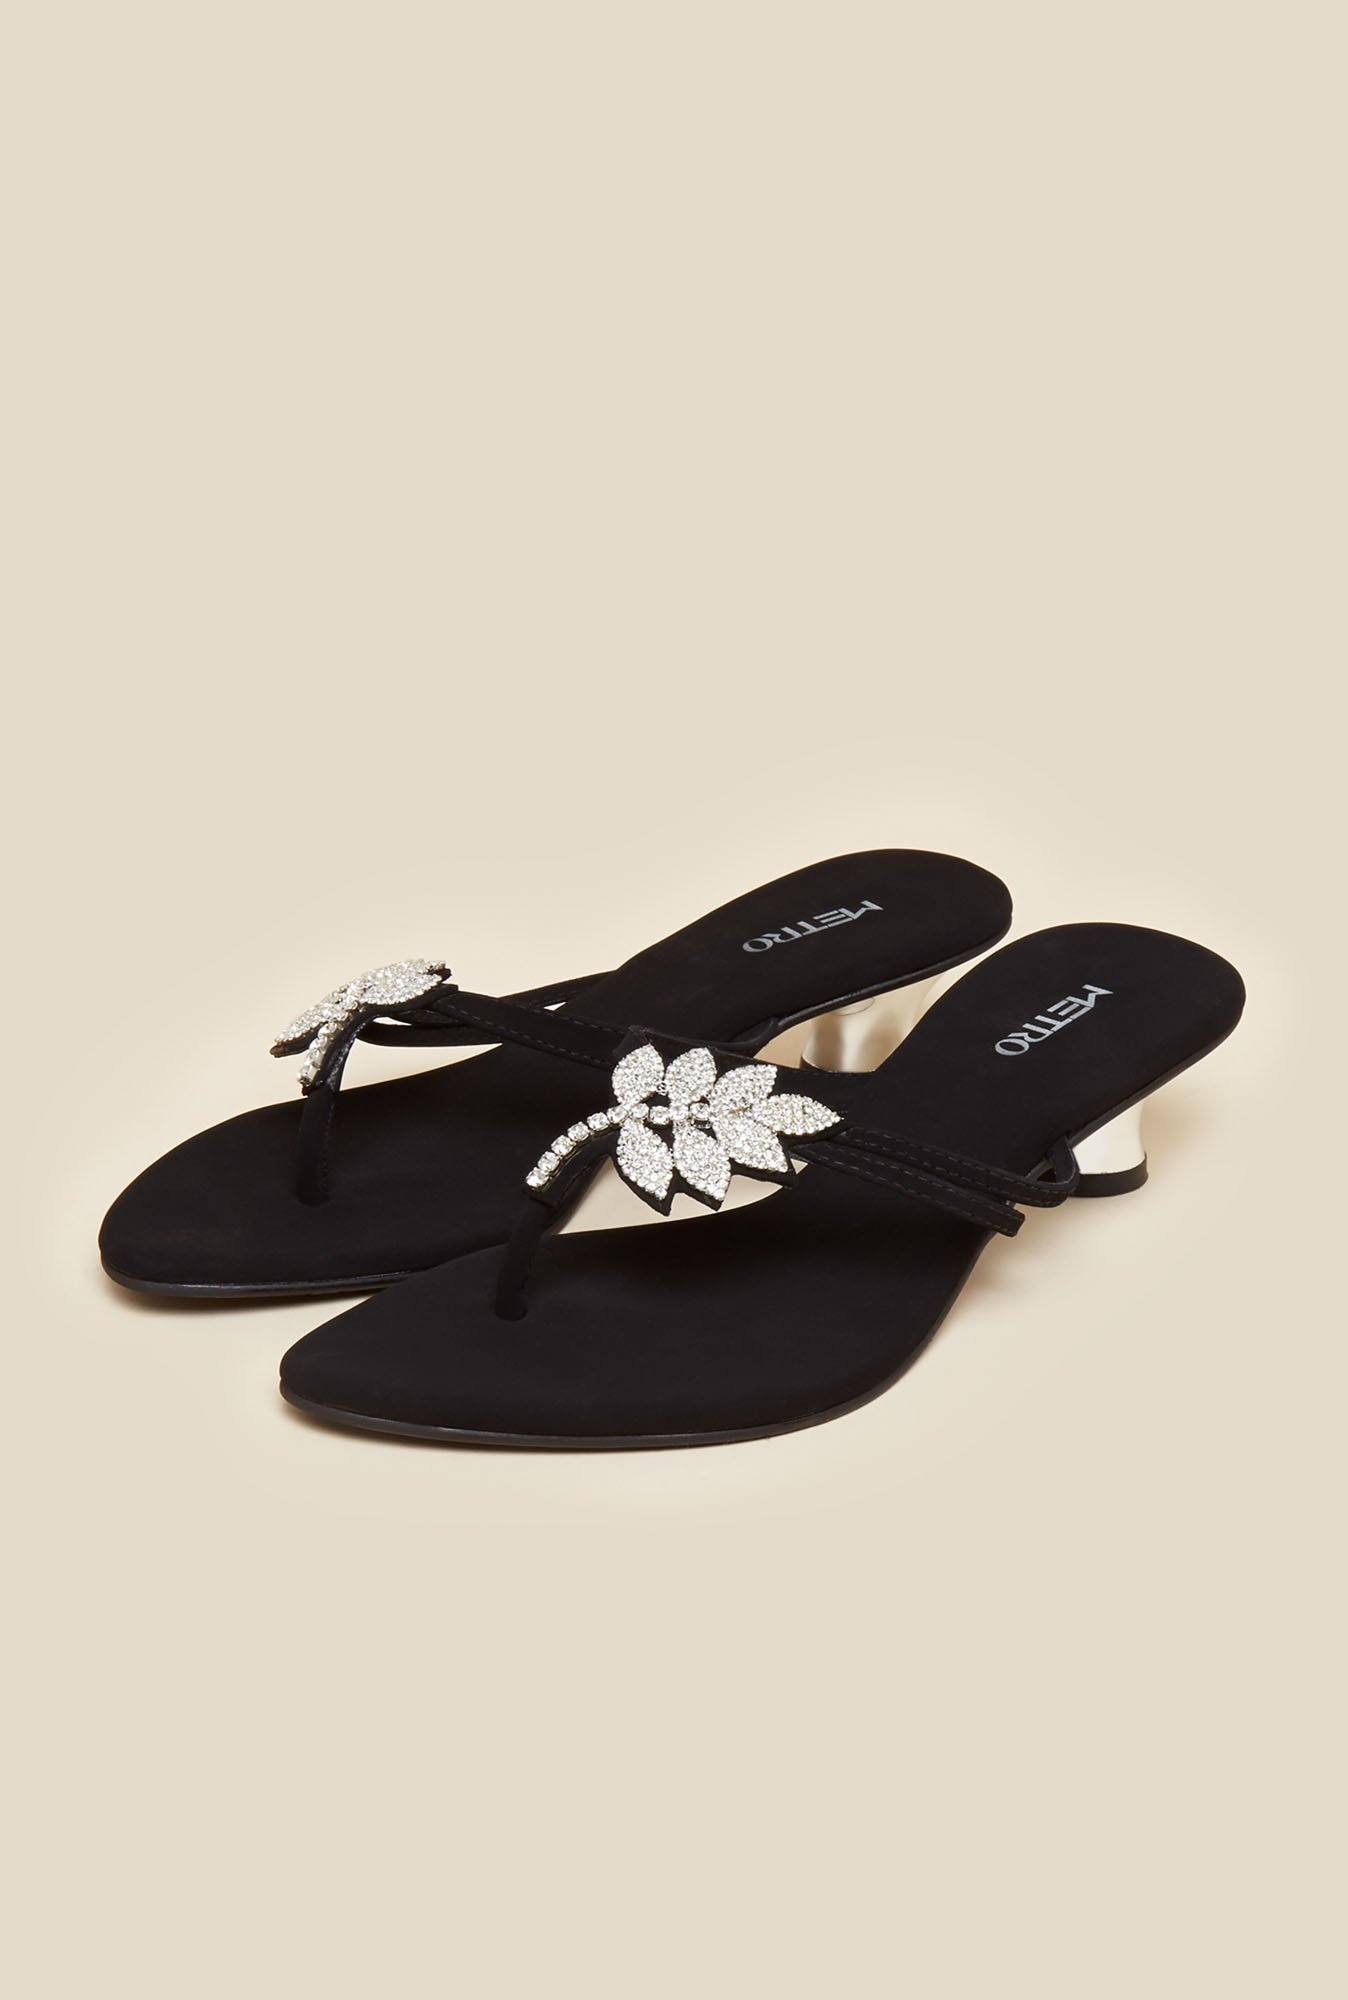 Metro Black Leaf Design Sandals